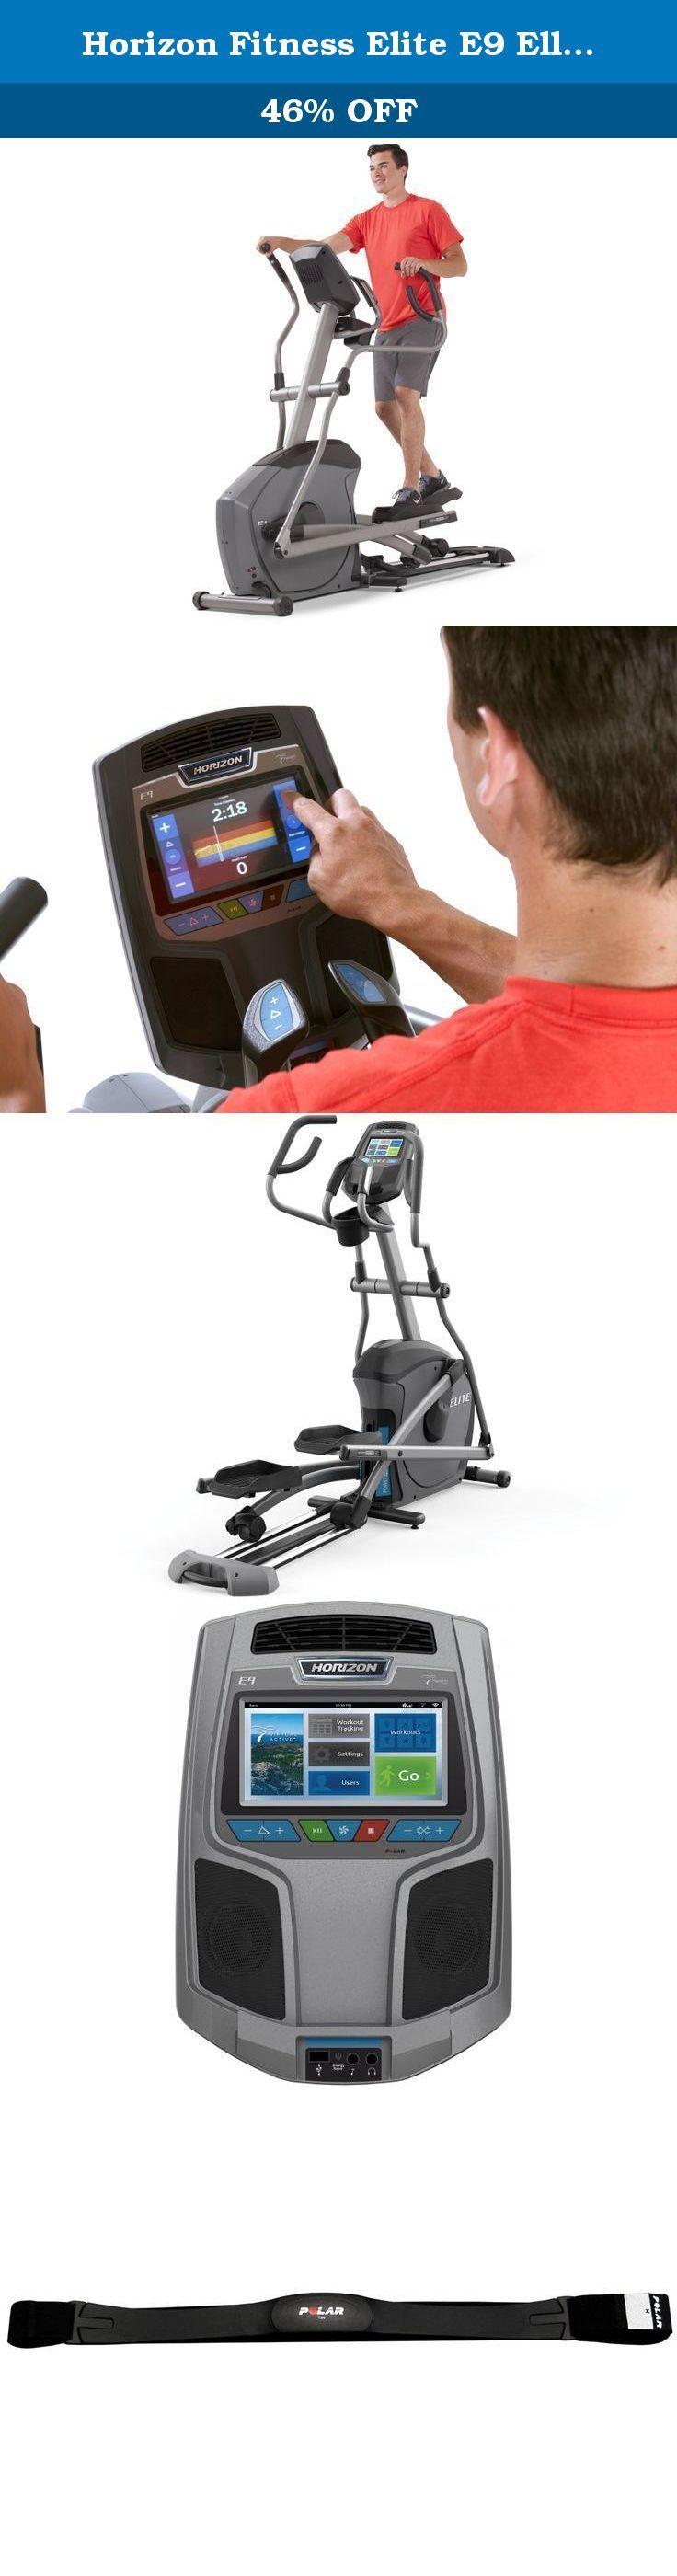 Horizon Fitness Elite E9 Elliptical Trainer. When you want advanced training features along with truly innovative entertainment, the Horizon Fitness Elite E9 is the perfect elliptical for you. The heavy flywheel keeps your motion smooth and fluid, and the large, touchscreen display lets you enjoy immersive, forward-motion Virtual Active videos that are synced to your workout.